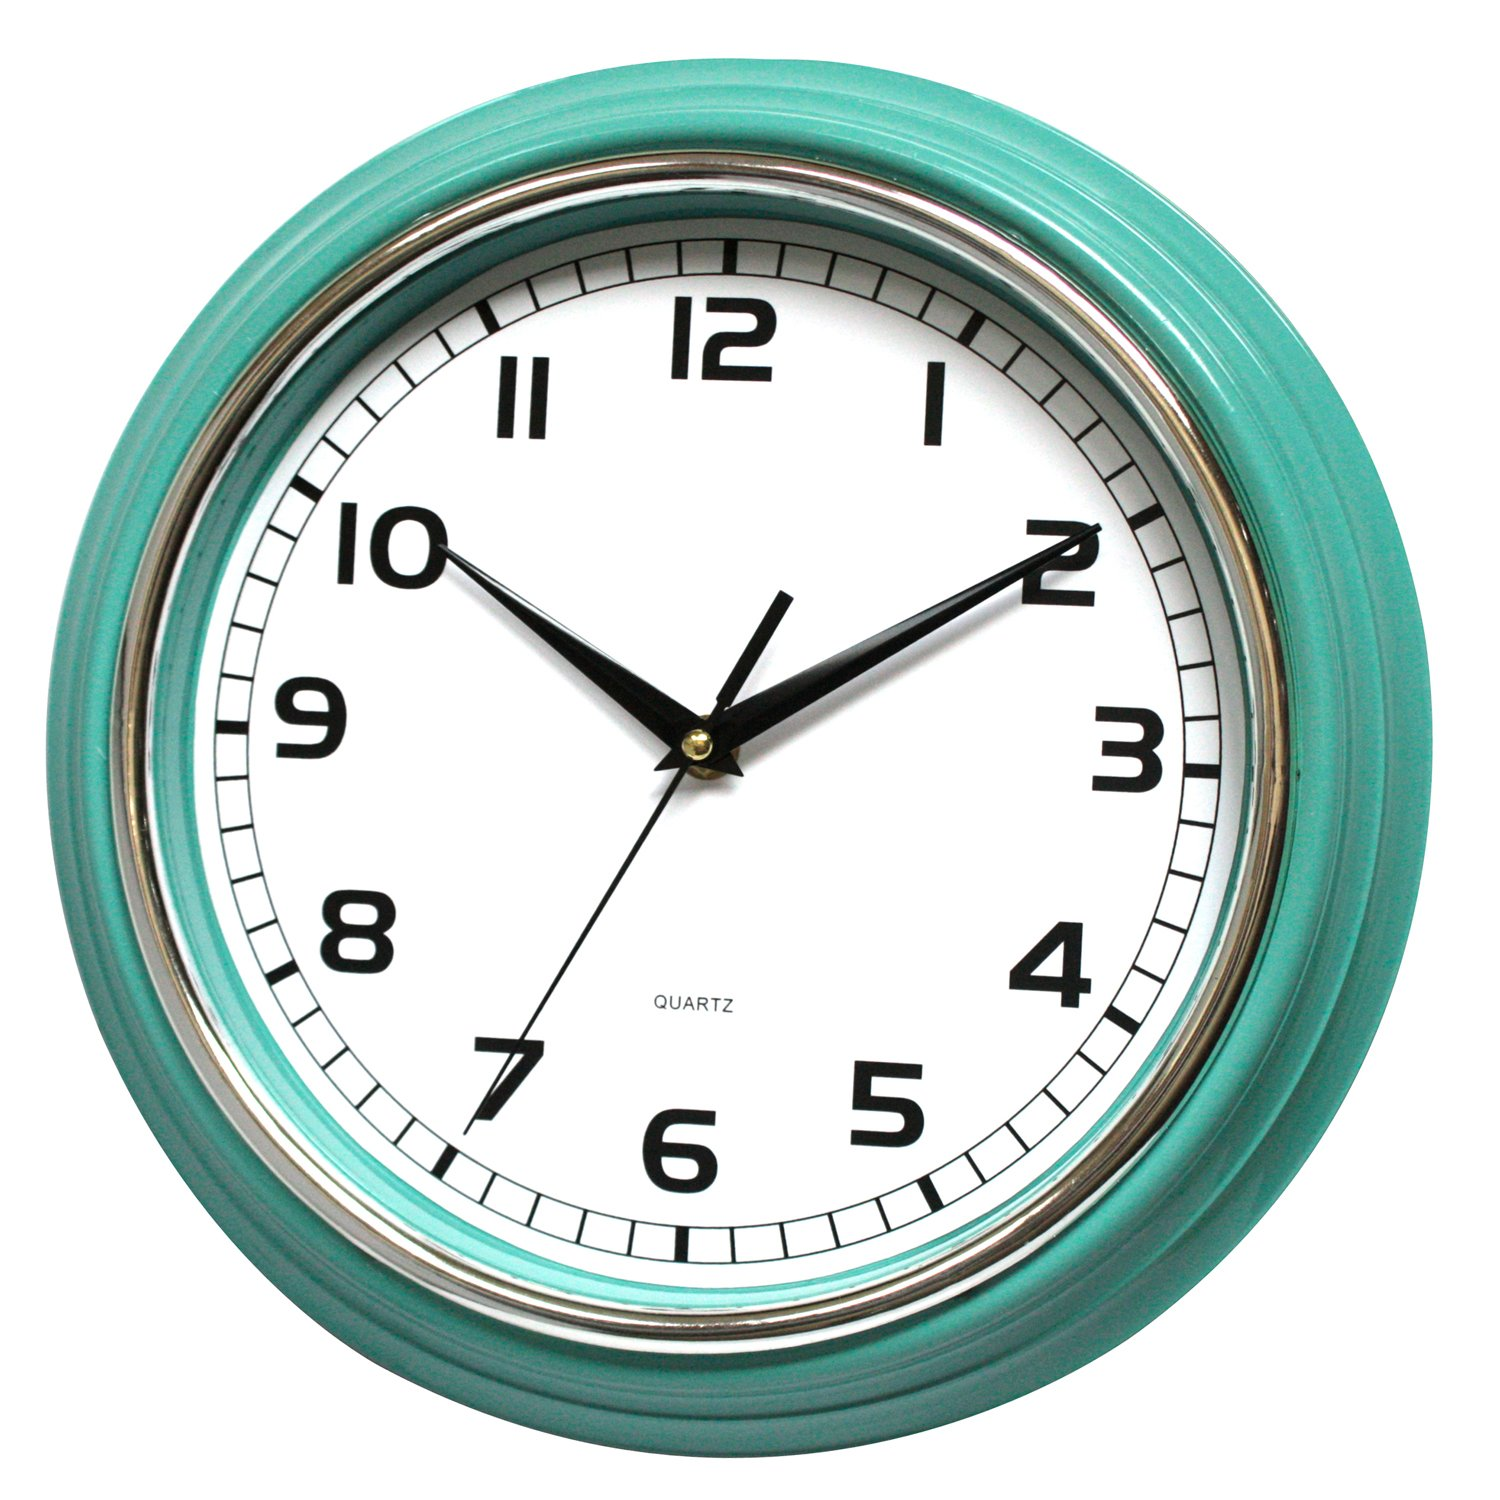 12-Inch Aqua Decorative Wall Clock- Silent & Non Ticking -Large & Easy to Read - Ideal for Home, Office, Living Room